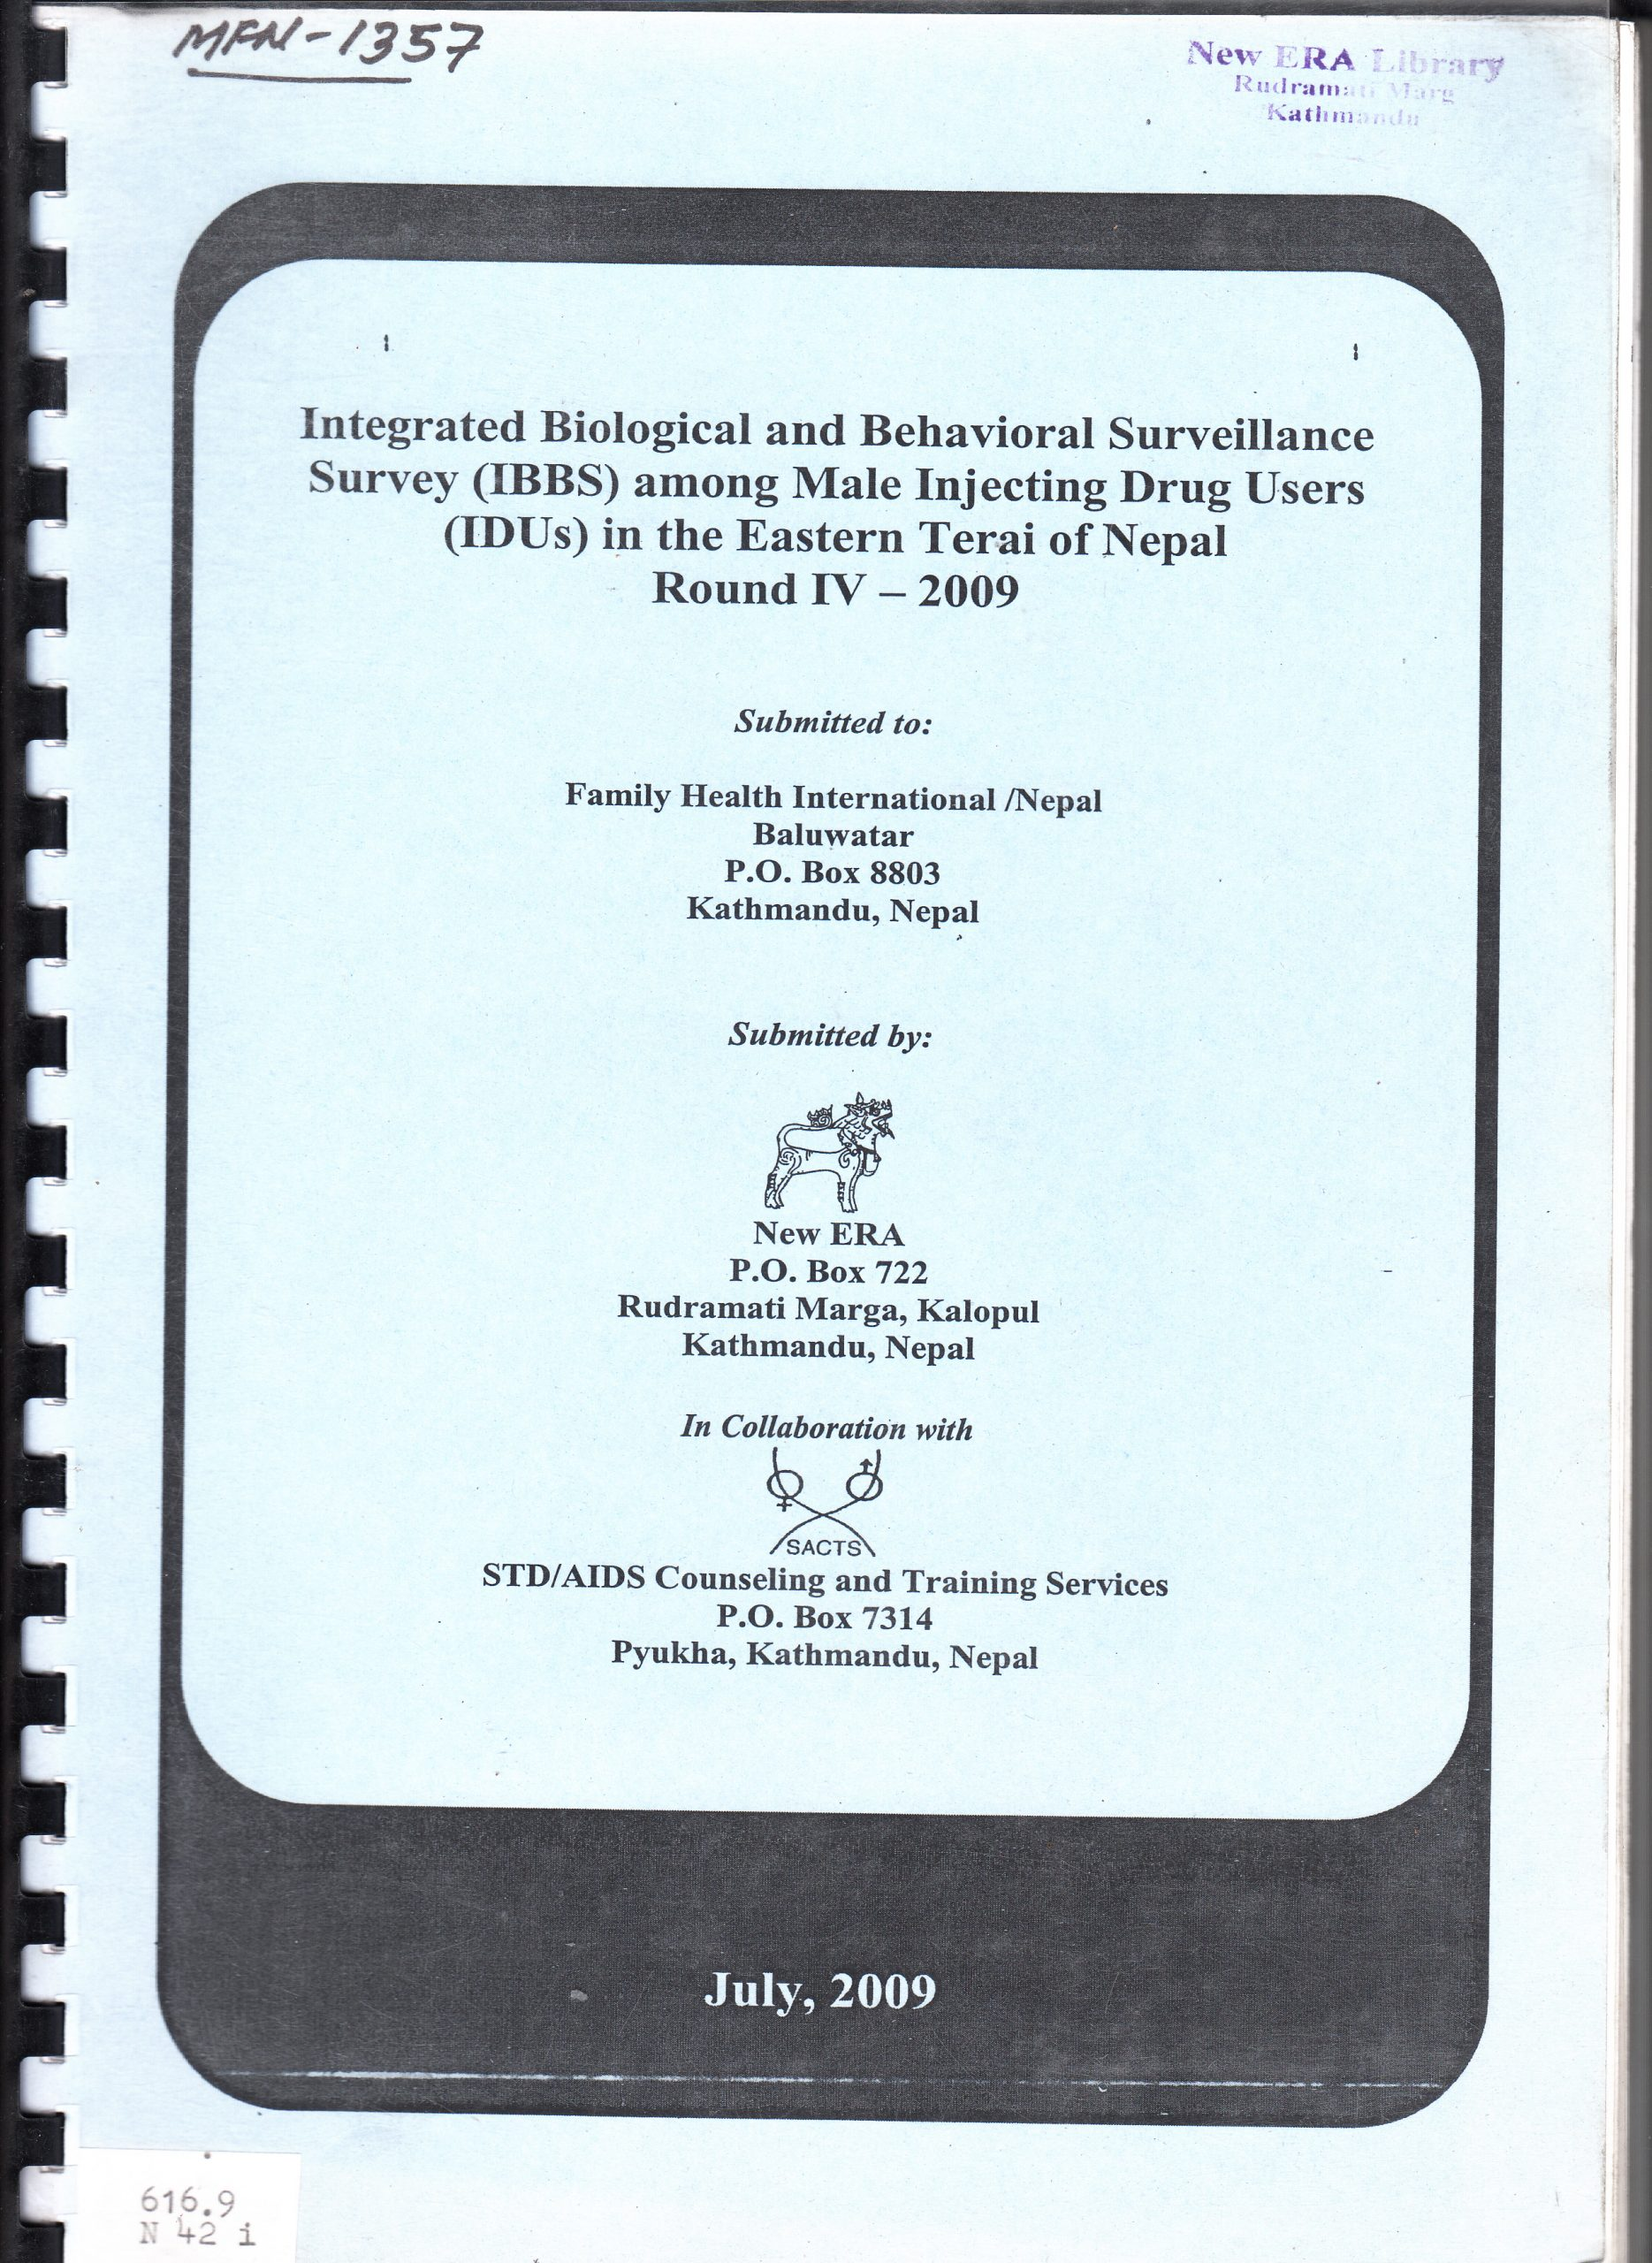 Integrated Biological and Behavioral Surveillance Survey (IBBS) among Male Injecting Drug Users (IDUs) in the Eastern Terai of Nepal, Round IV – 2009